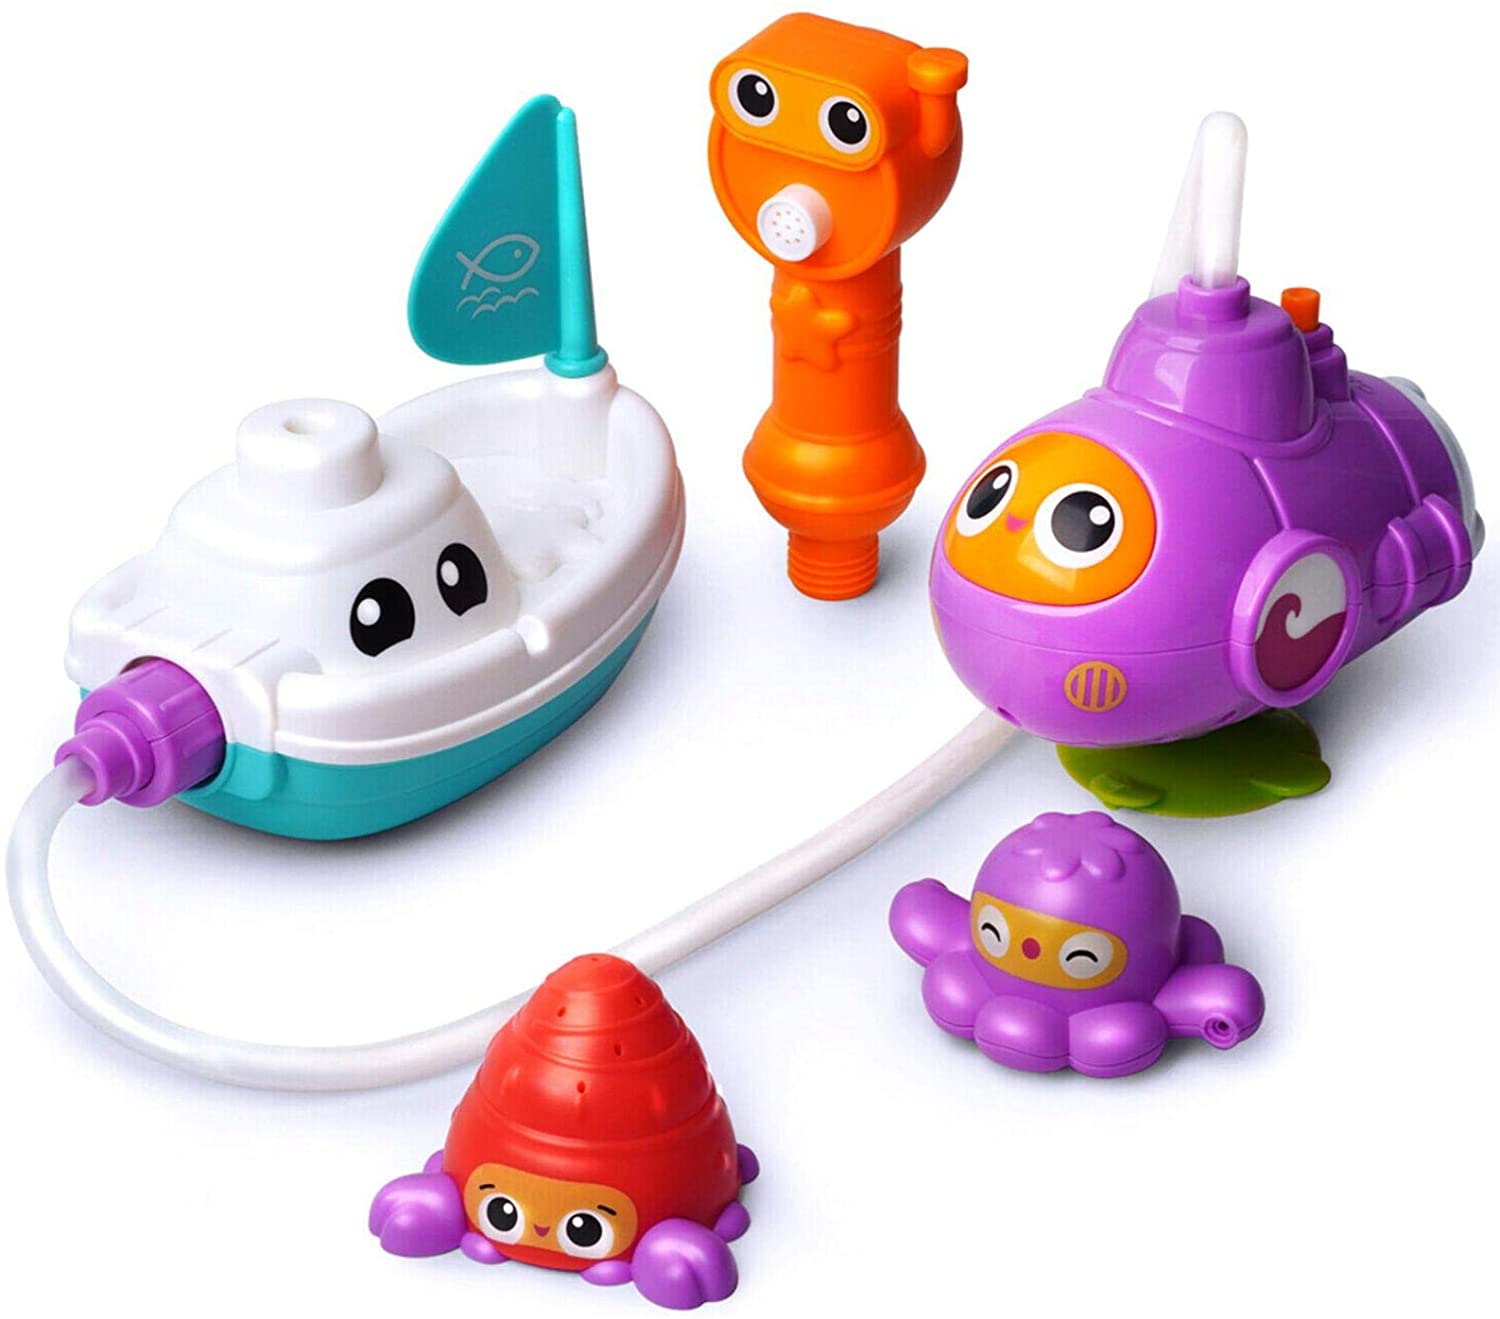 Bath Toy Water Jet Submarine Toy Wind Up Submarine Squirts for Kids.Sensory Development Bathtime Shower For3 4 5 Years & Up Old Baby | Toddler | Boys | Girls | Kids Gift